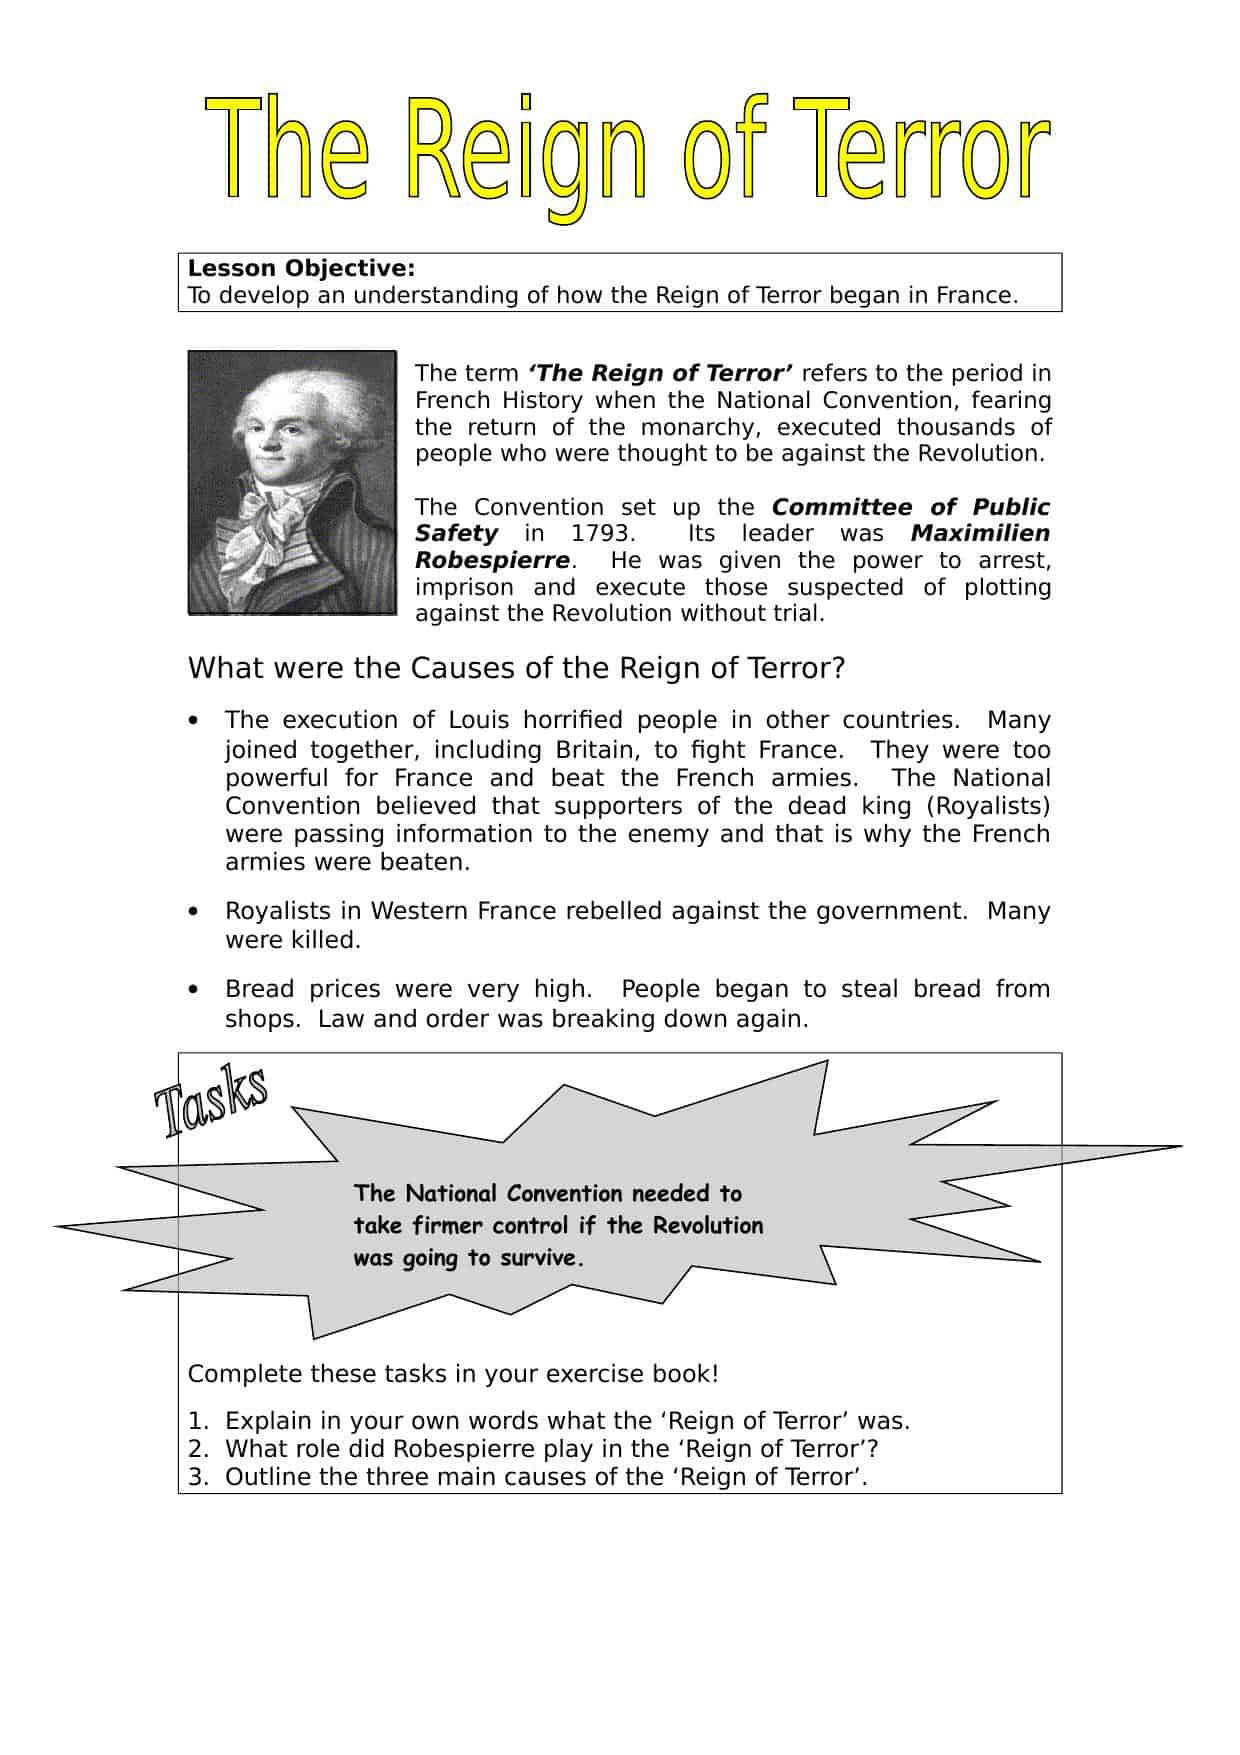 Causes Of The Reign Of Terror Worksheet